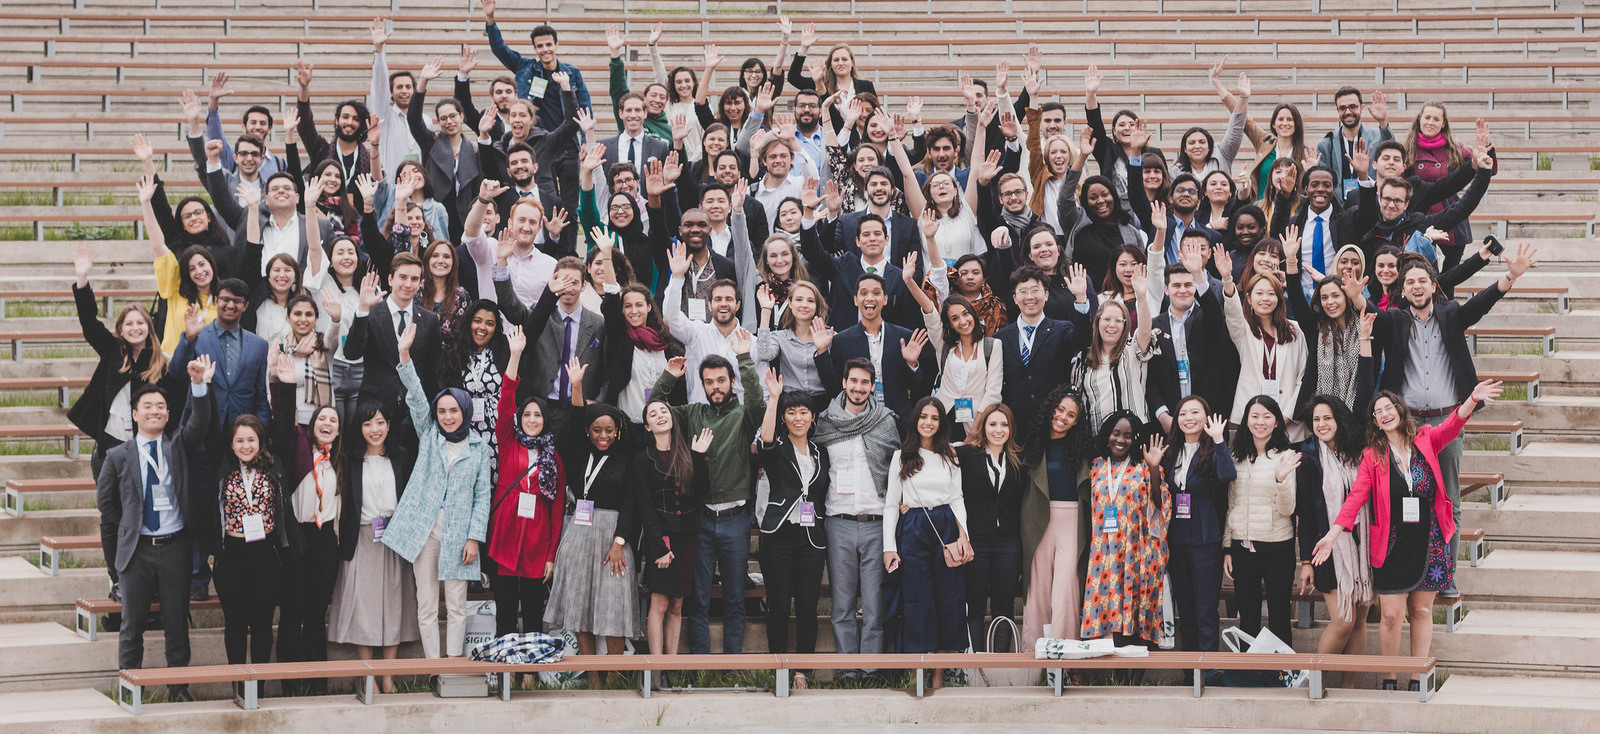 2018 Global Voices National Scholarship Recipient, Jananie Janarthana, with fellow delegates at the Y20 Youth summit in argentina.